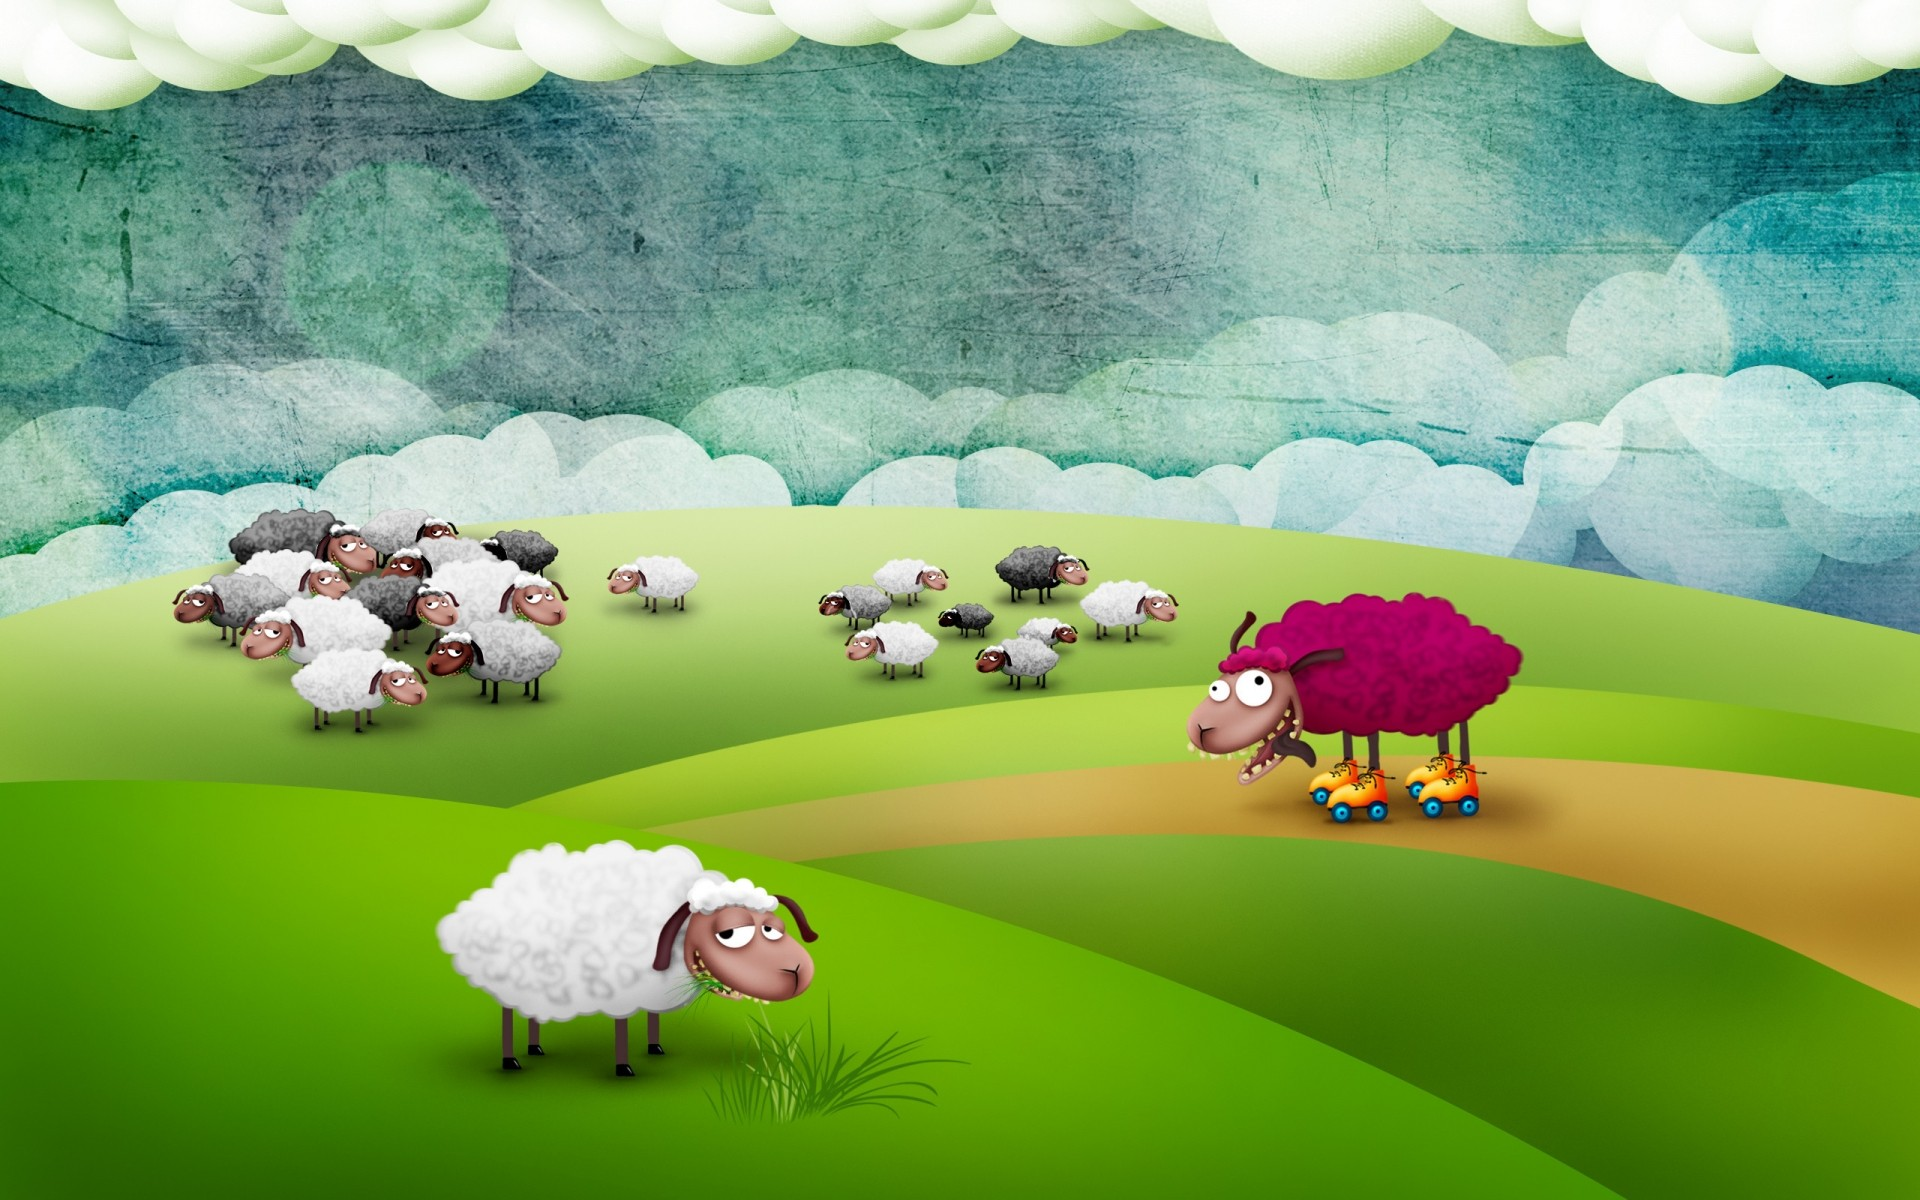 Funny Sheep IPhone Wallpapers For Free